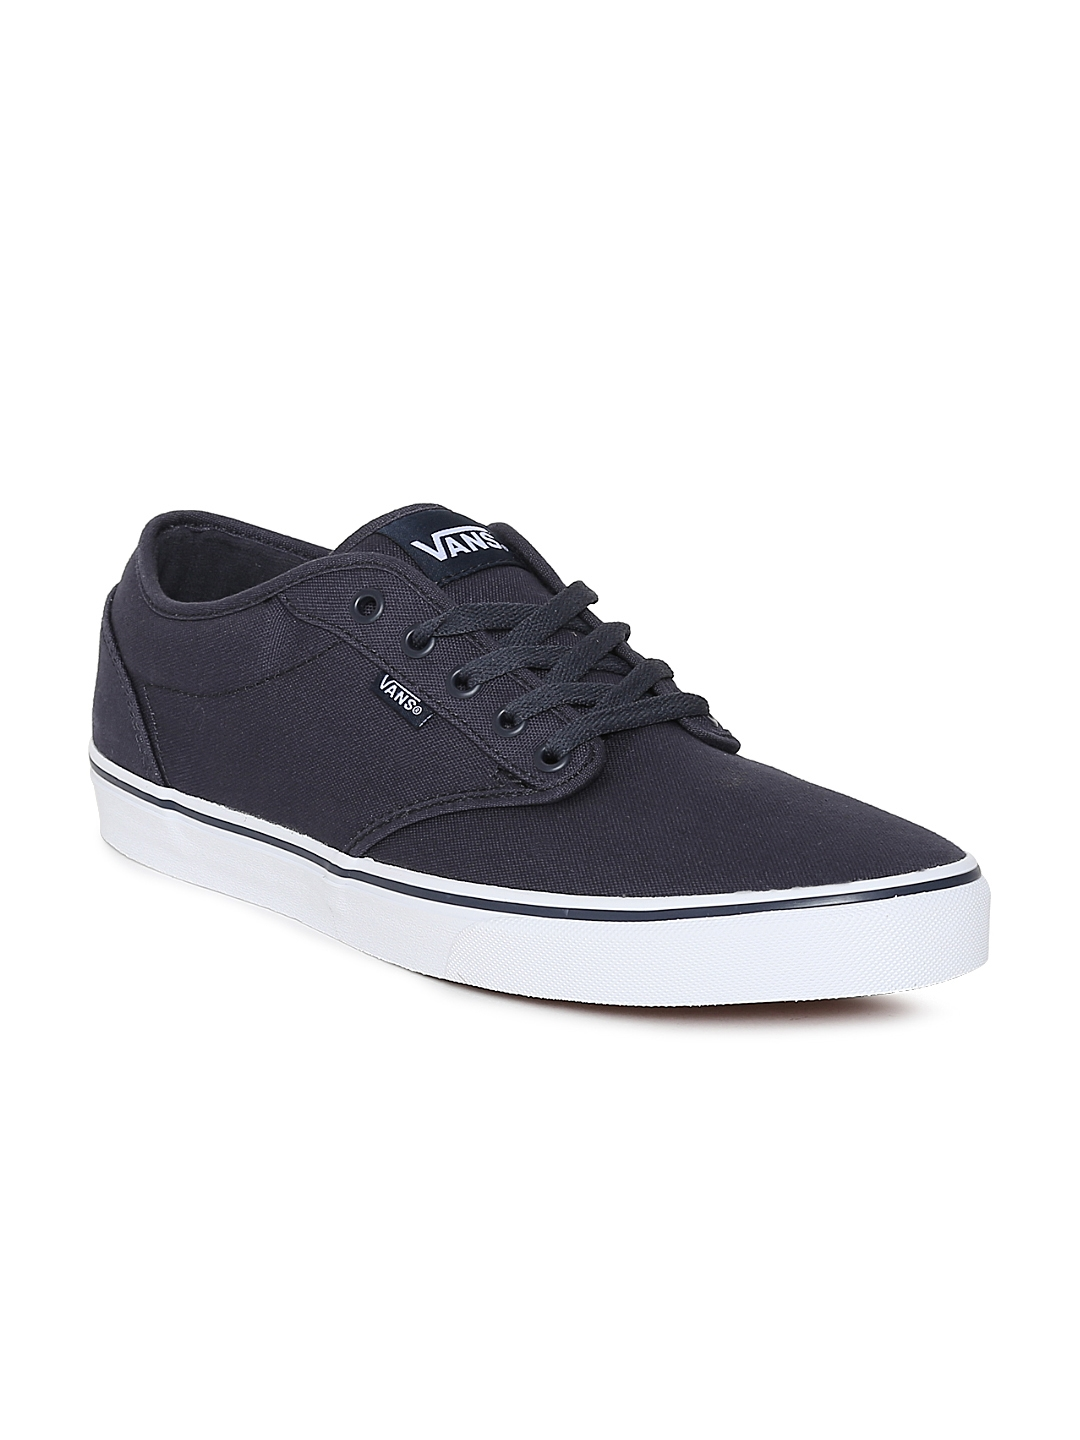 7123fa12230c3c Buy Vans Men Navy Blue Atwood Sneakers - Casual Shoes for Men ...